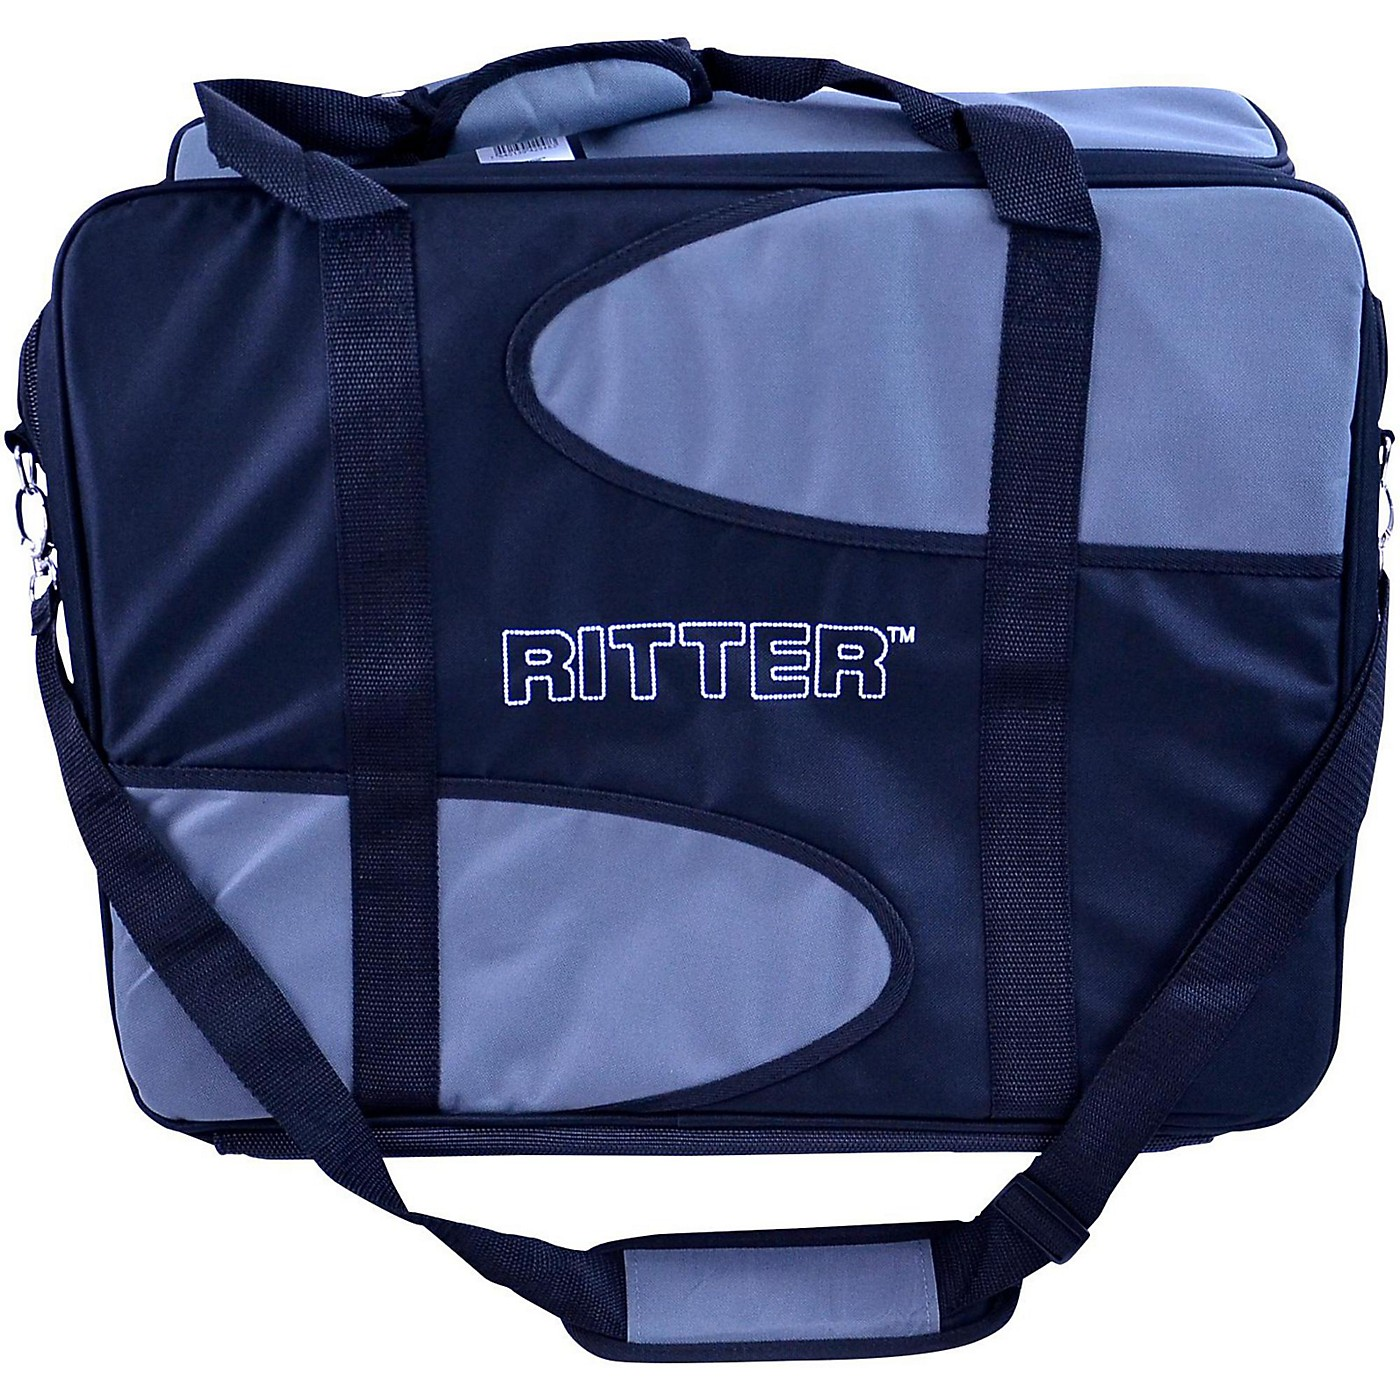 Ritter Accessory RCAC-X-9/BST Large Bag Black/Steel Grey thumbnail